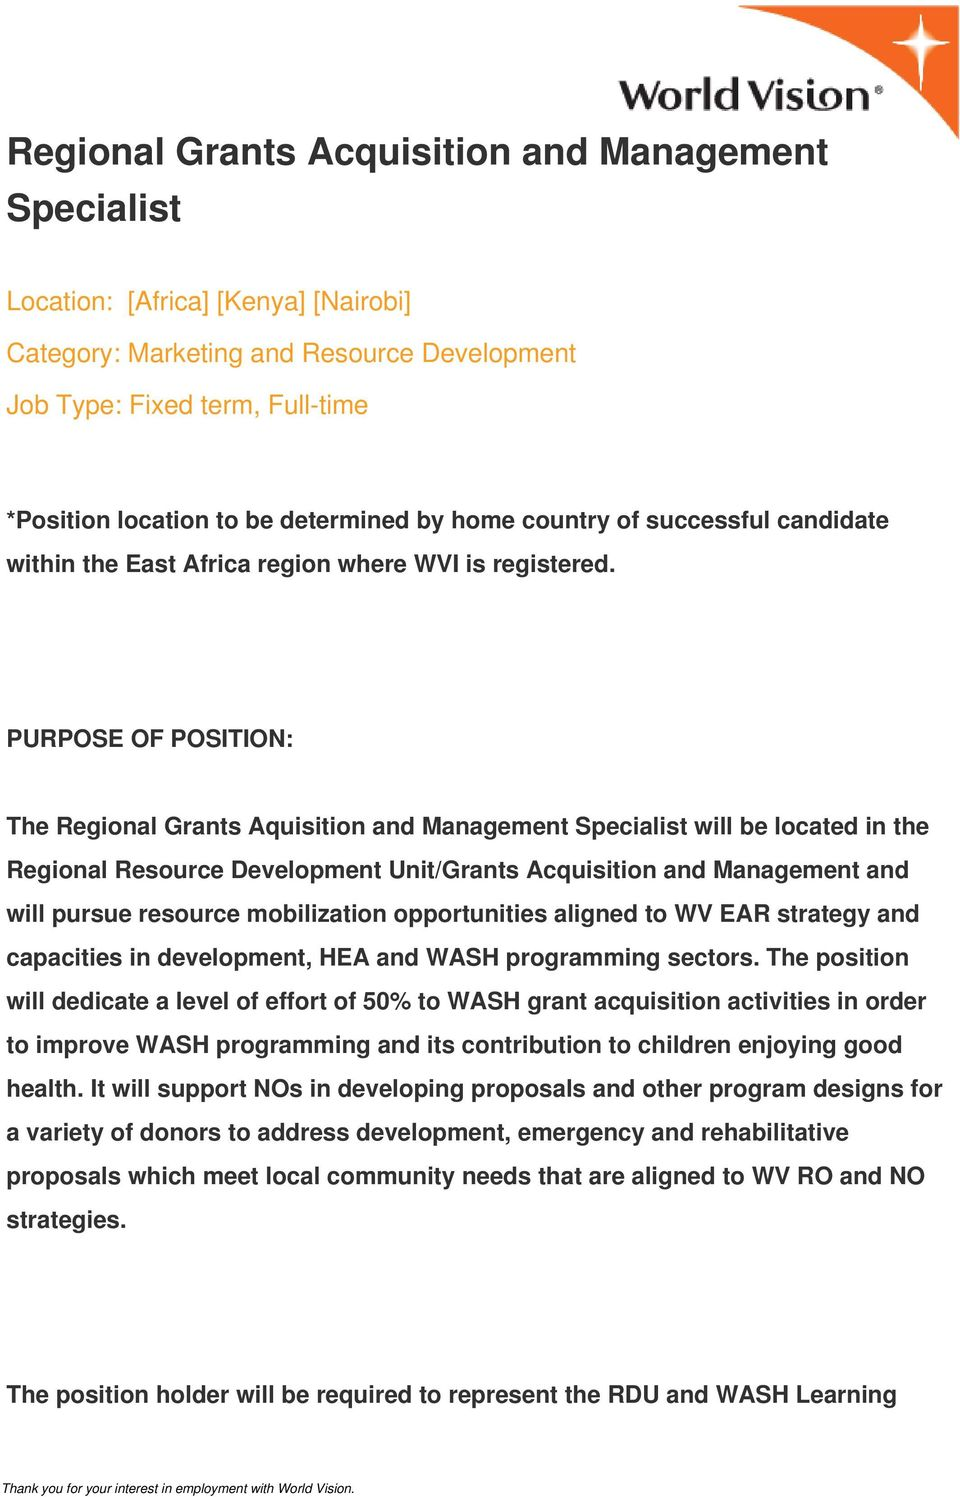 PURPOSE OF POSITION: The Regional Grants Aquisition and Management Specialist will be located in the Regional Resource Development Unit/Grants Acquisition and Management and will pursue resource